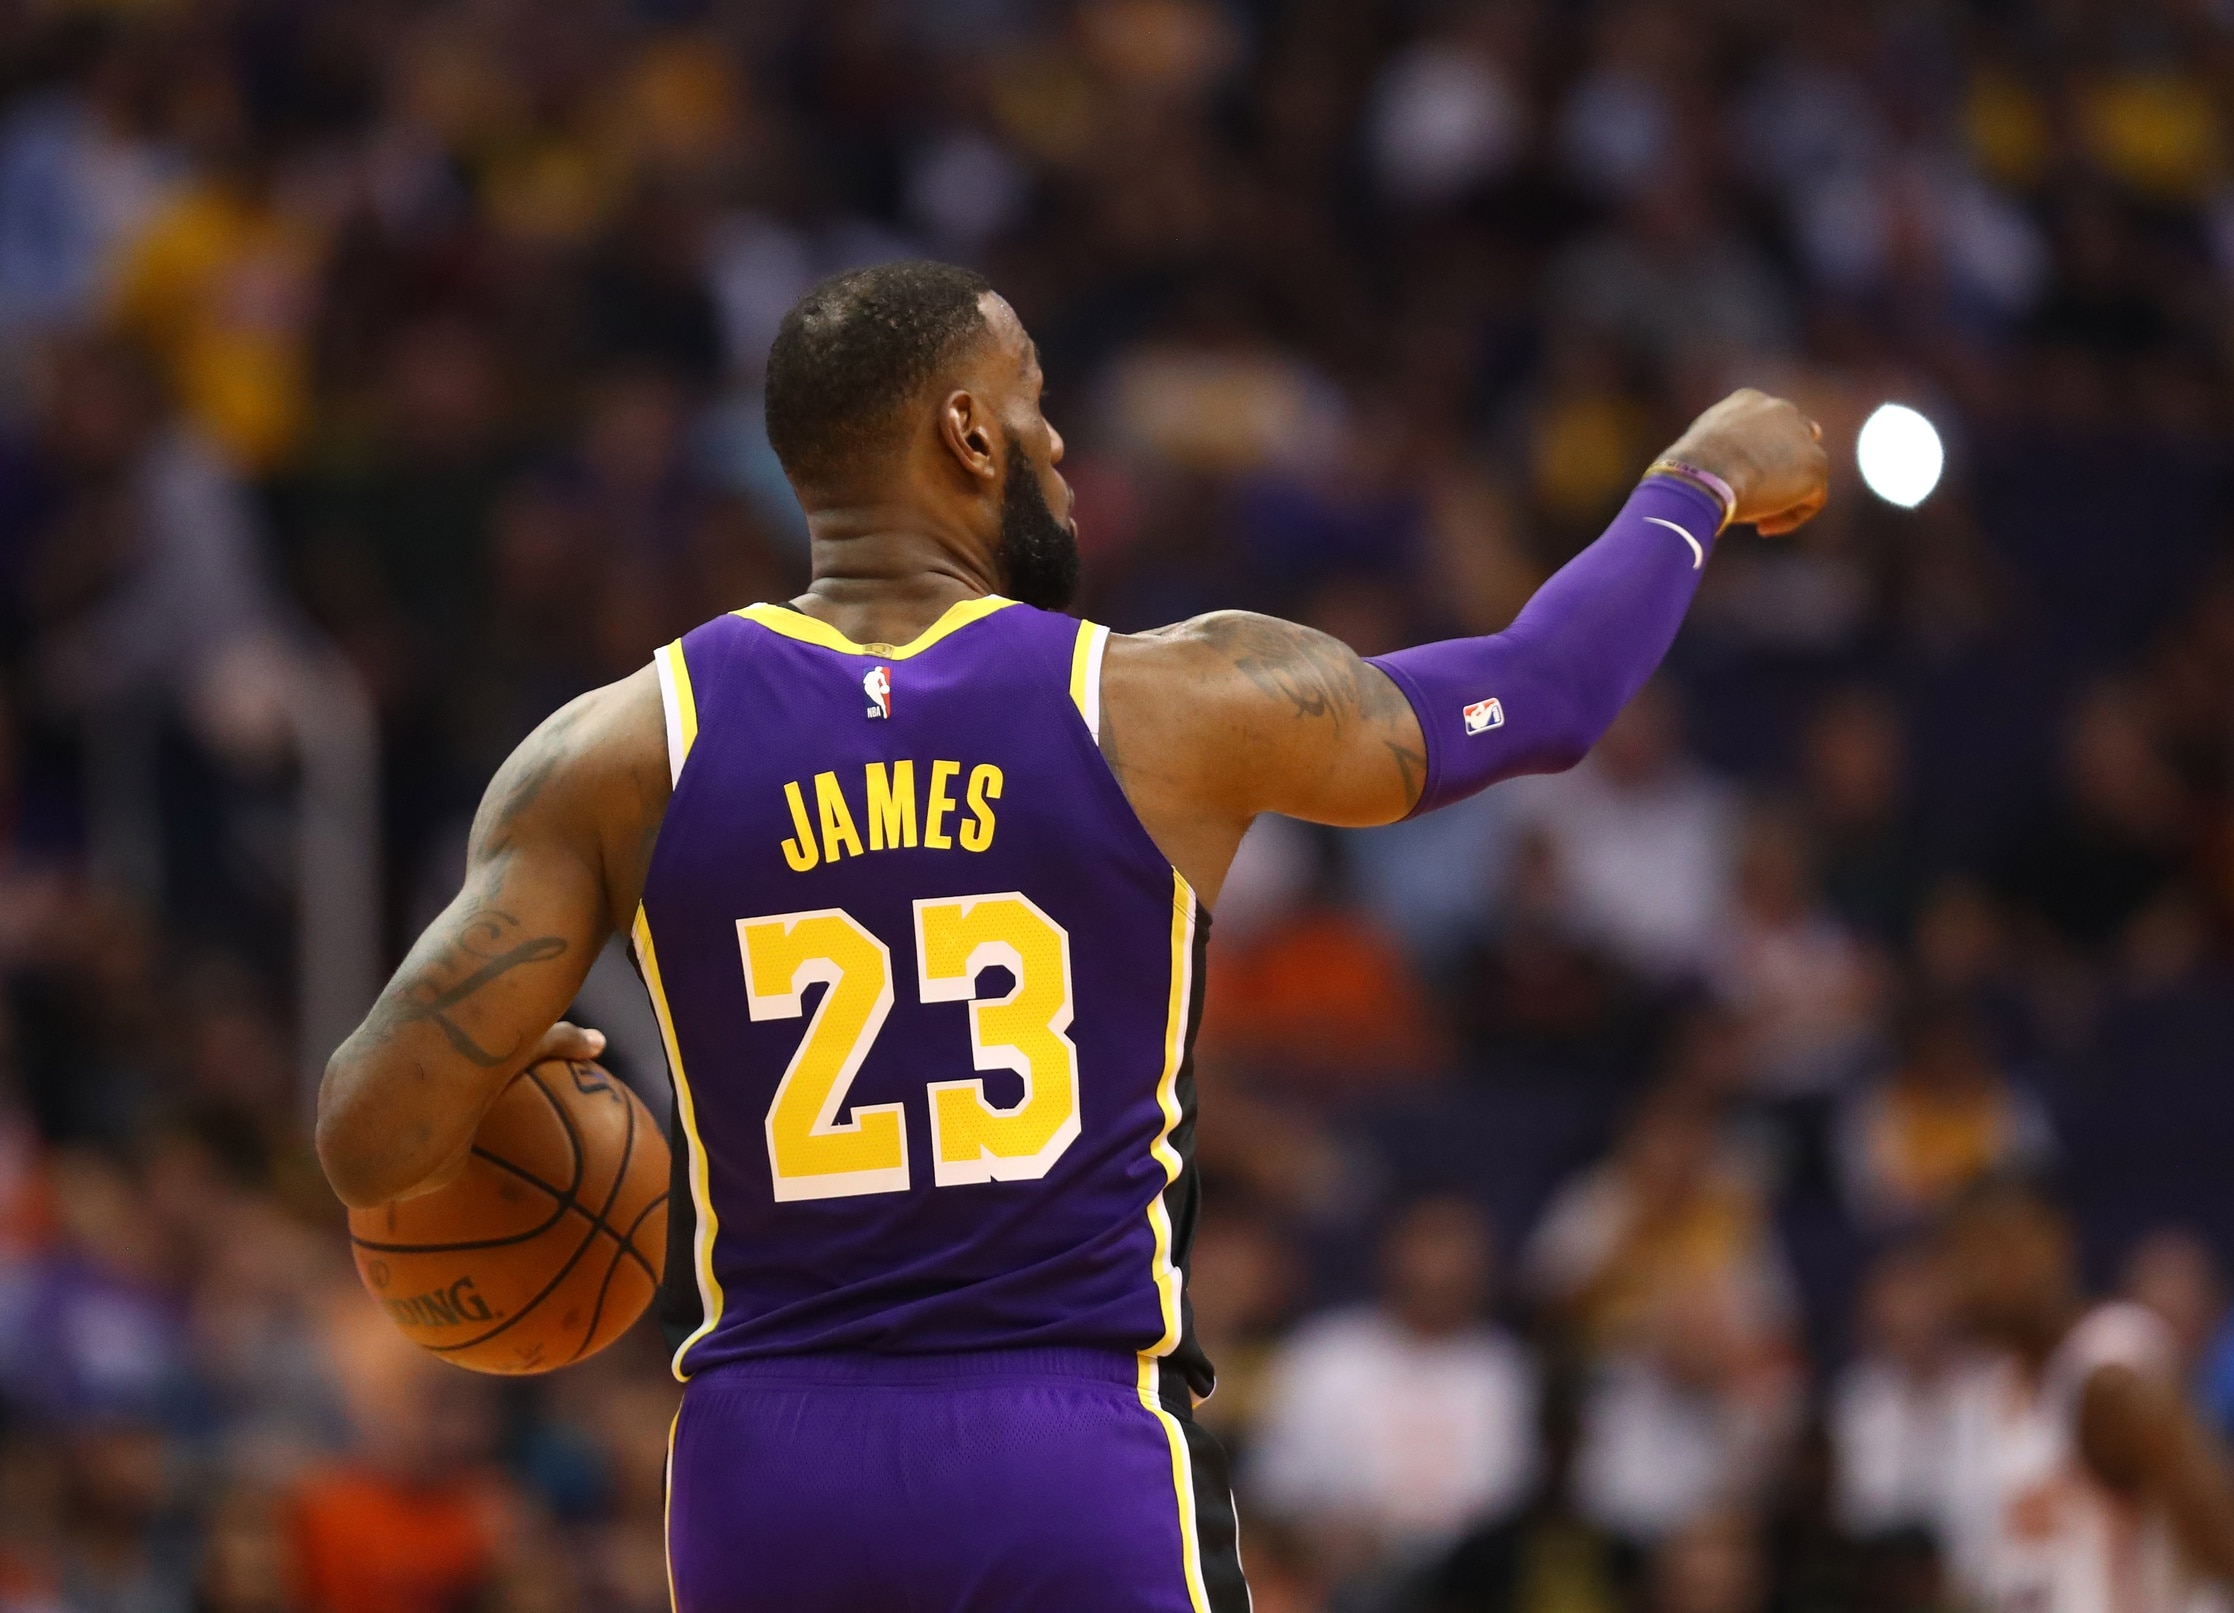 fe047b14 LOOK: LeBron James announces new jersey number